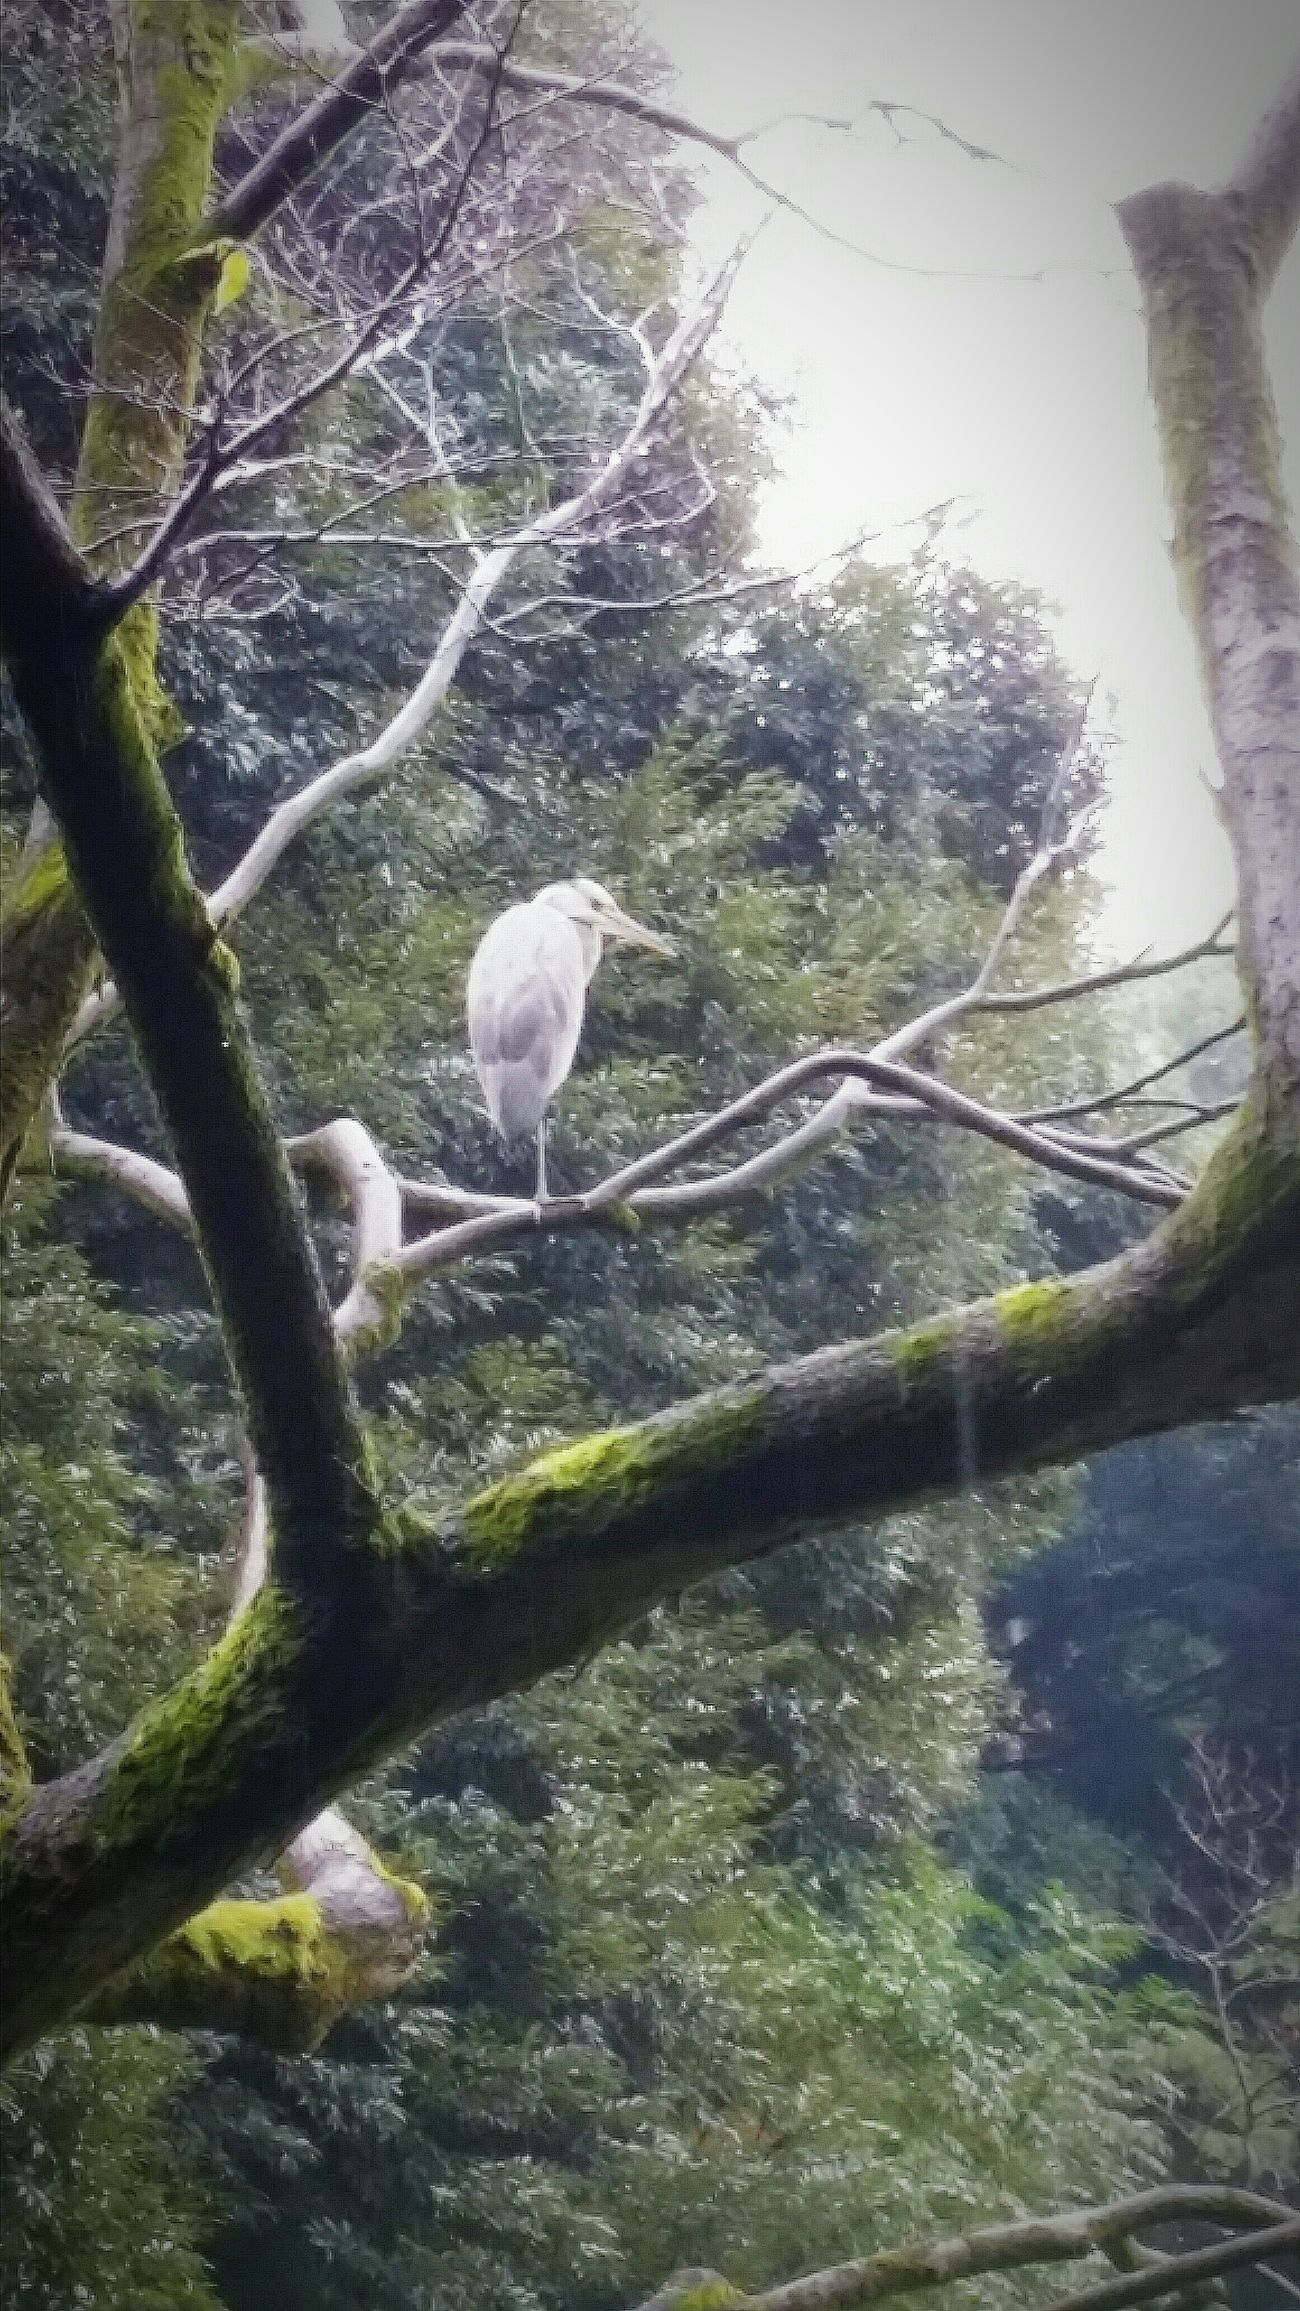 Heron ? Bird Wildlife Tree Koishikawa Korakuen Garden Tokyo Tokyo Nature Fall Autumn Tokyo 2015 Autumn 2015 Naturelover EyeEm Nature Lover Nature_collection Nature Photography Enjoying Nature Japan Travel Photography